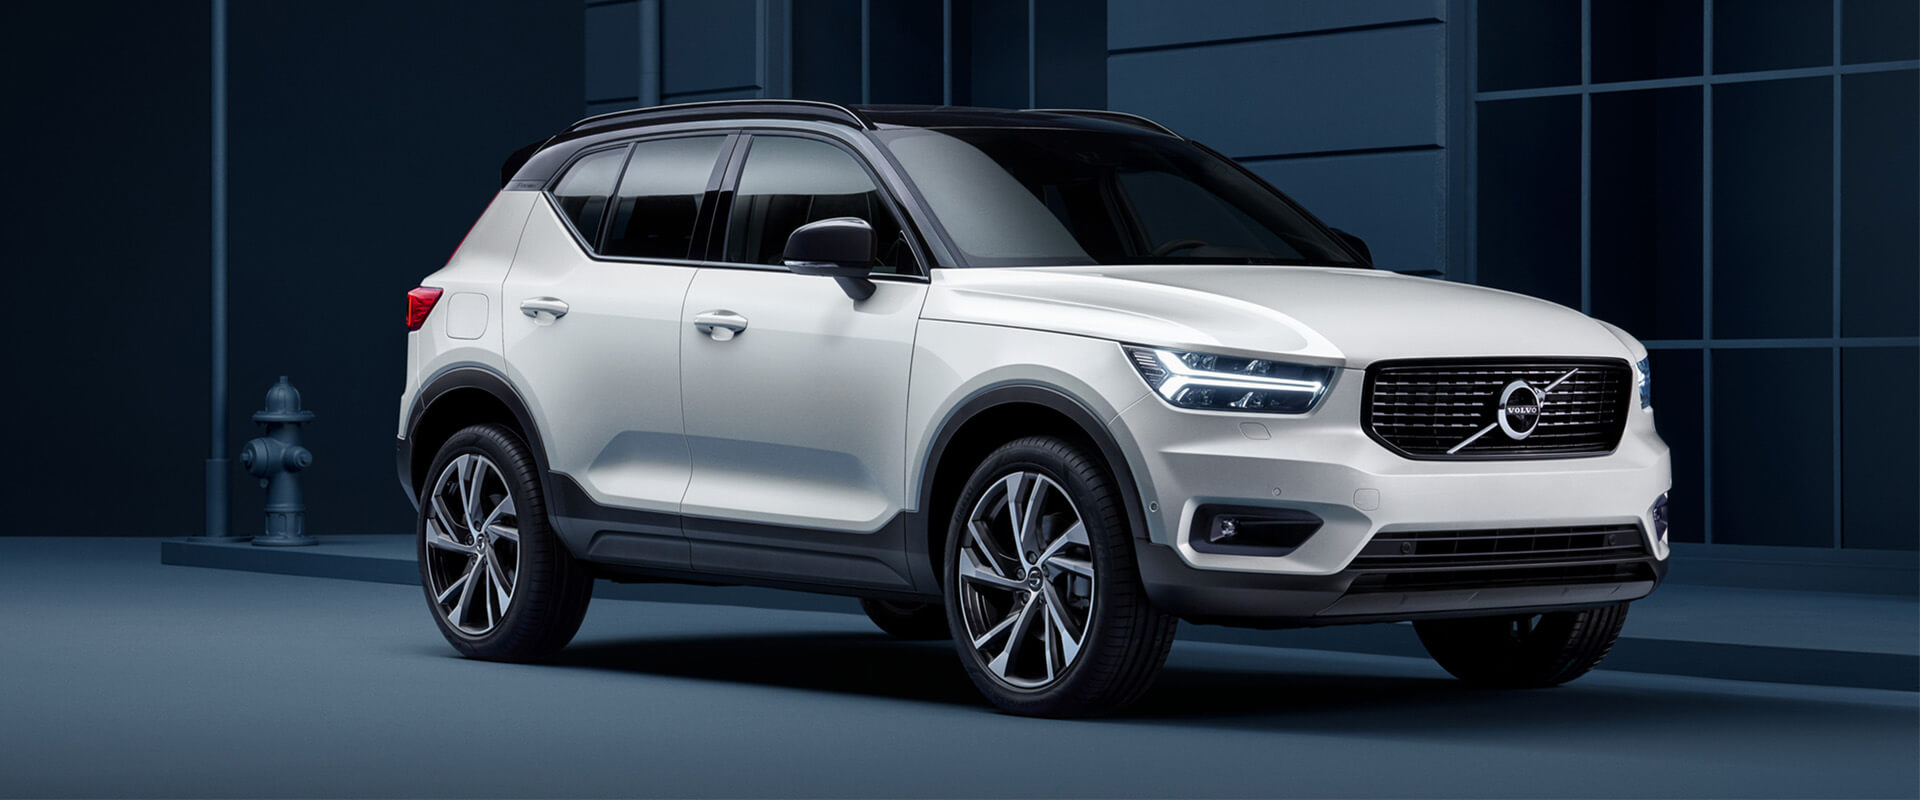 Volvo Xc40 For Sale In Kirrawee Volvo Cars Sutherland